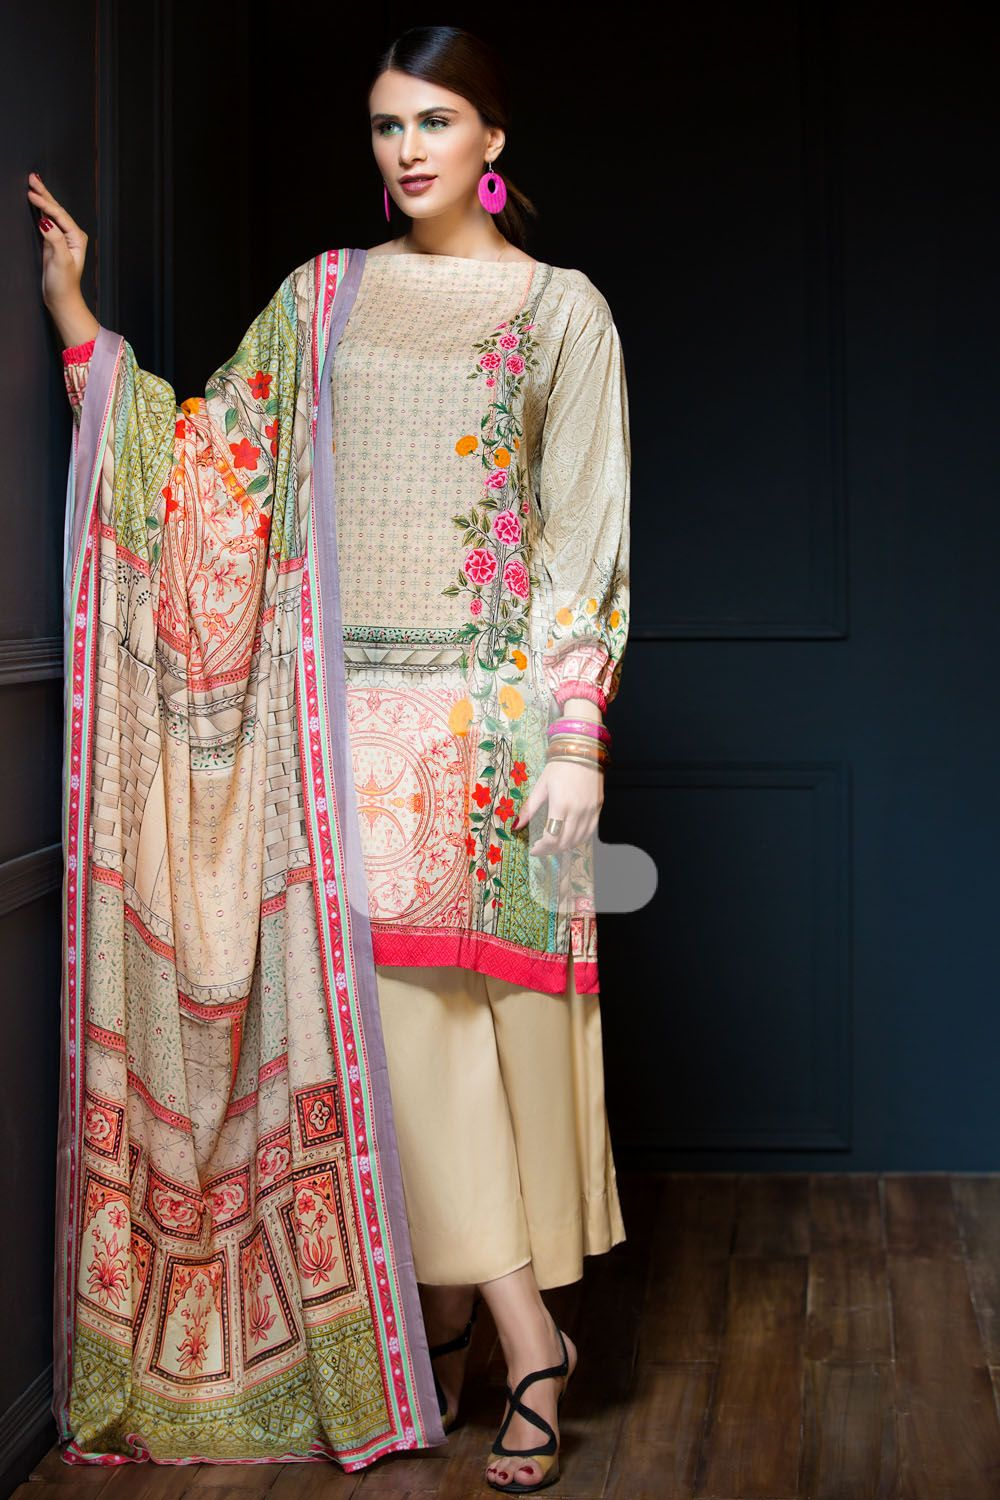 a861bdd2b4a Unstitched 3 Piece Linen Pakistani Dress On Sale To Buy Online By Nishat  Linen Winter Collection 2018 At A Discount  springcollection  spring   readytowear ...